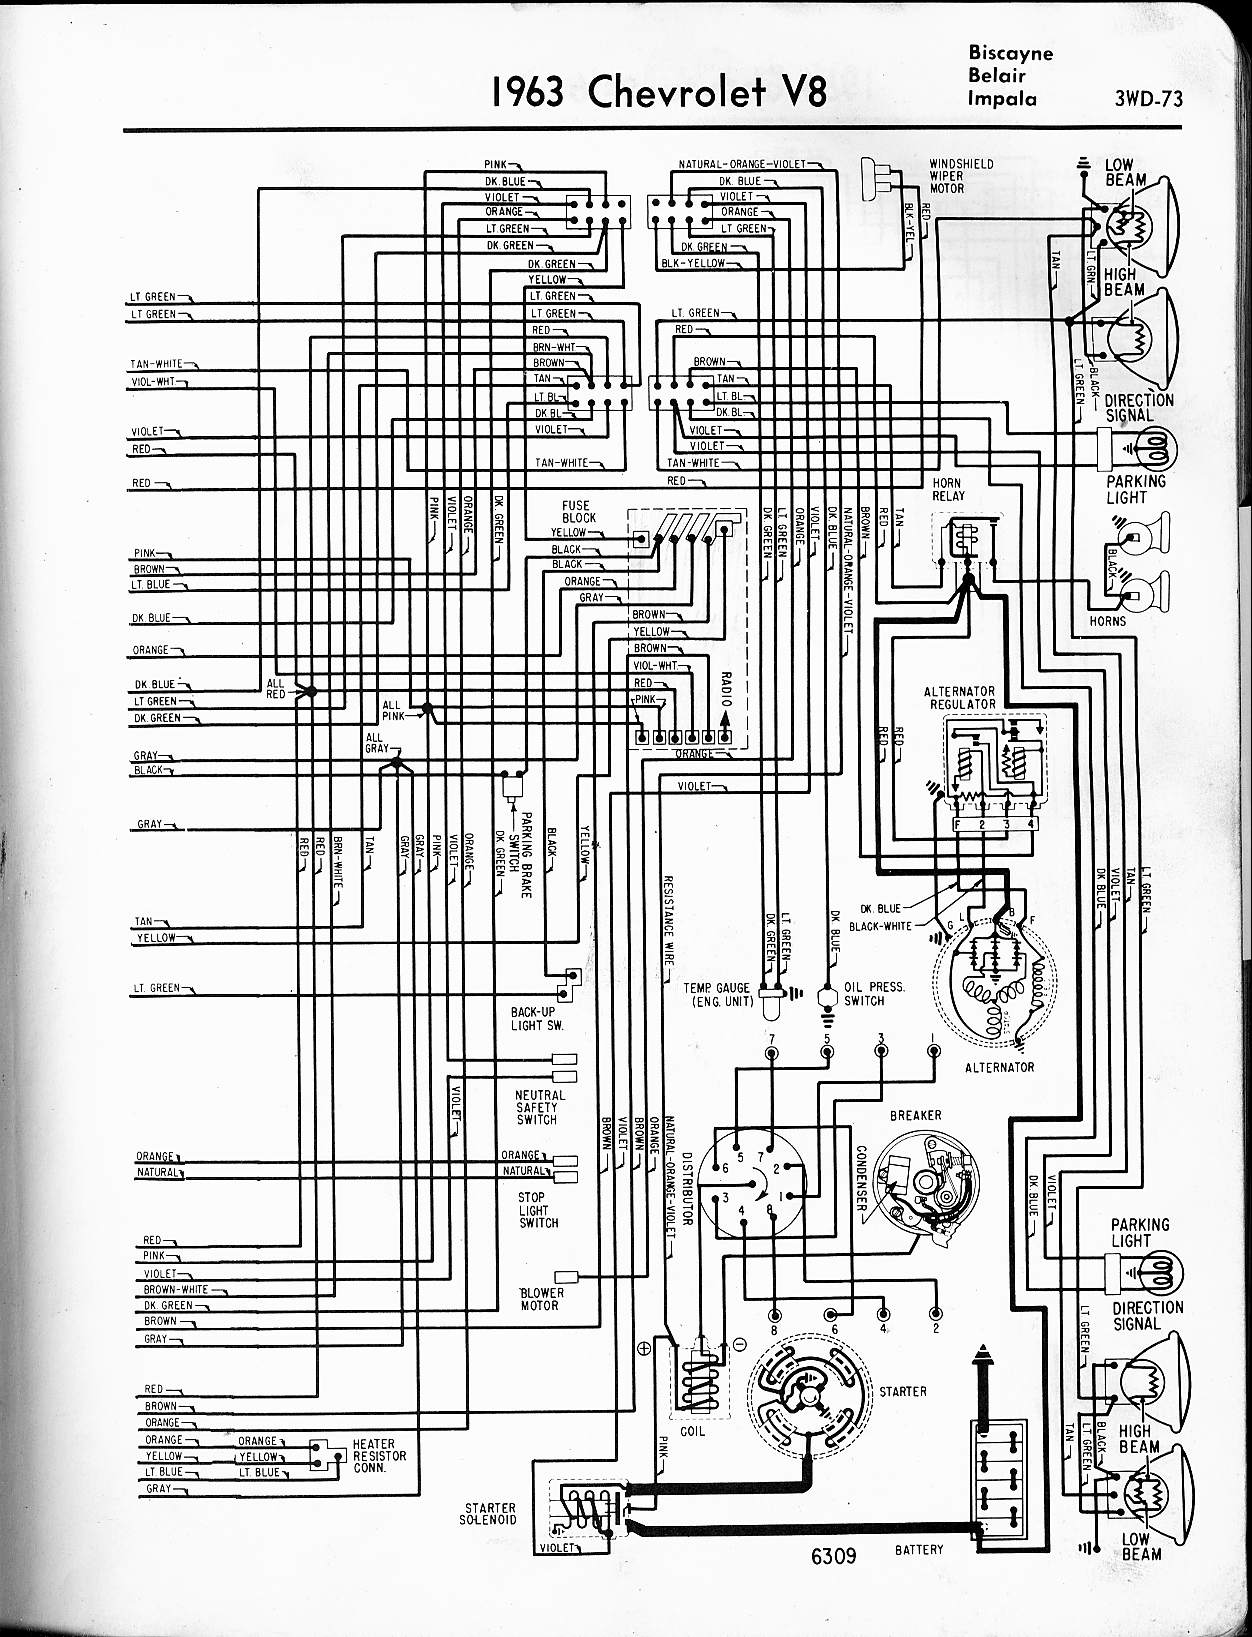 hight resolution of 57 65 chevy wiring diagrams 1964 impala starter wiring diagram 1963 v8 biscayne belair